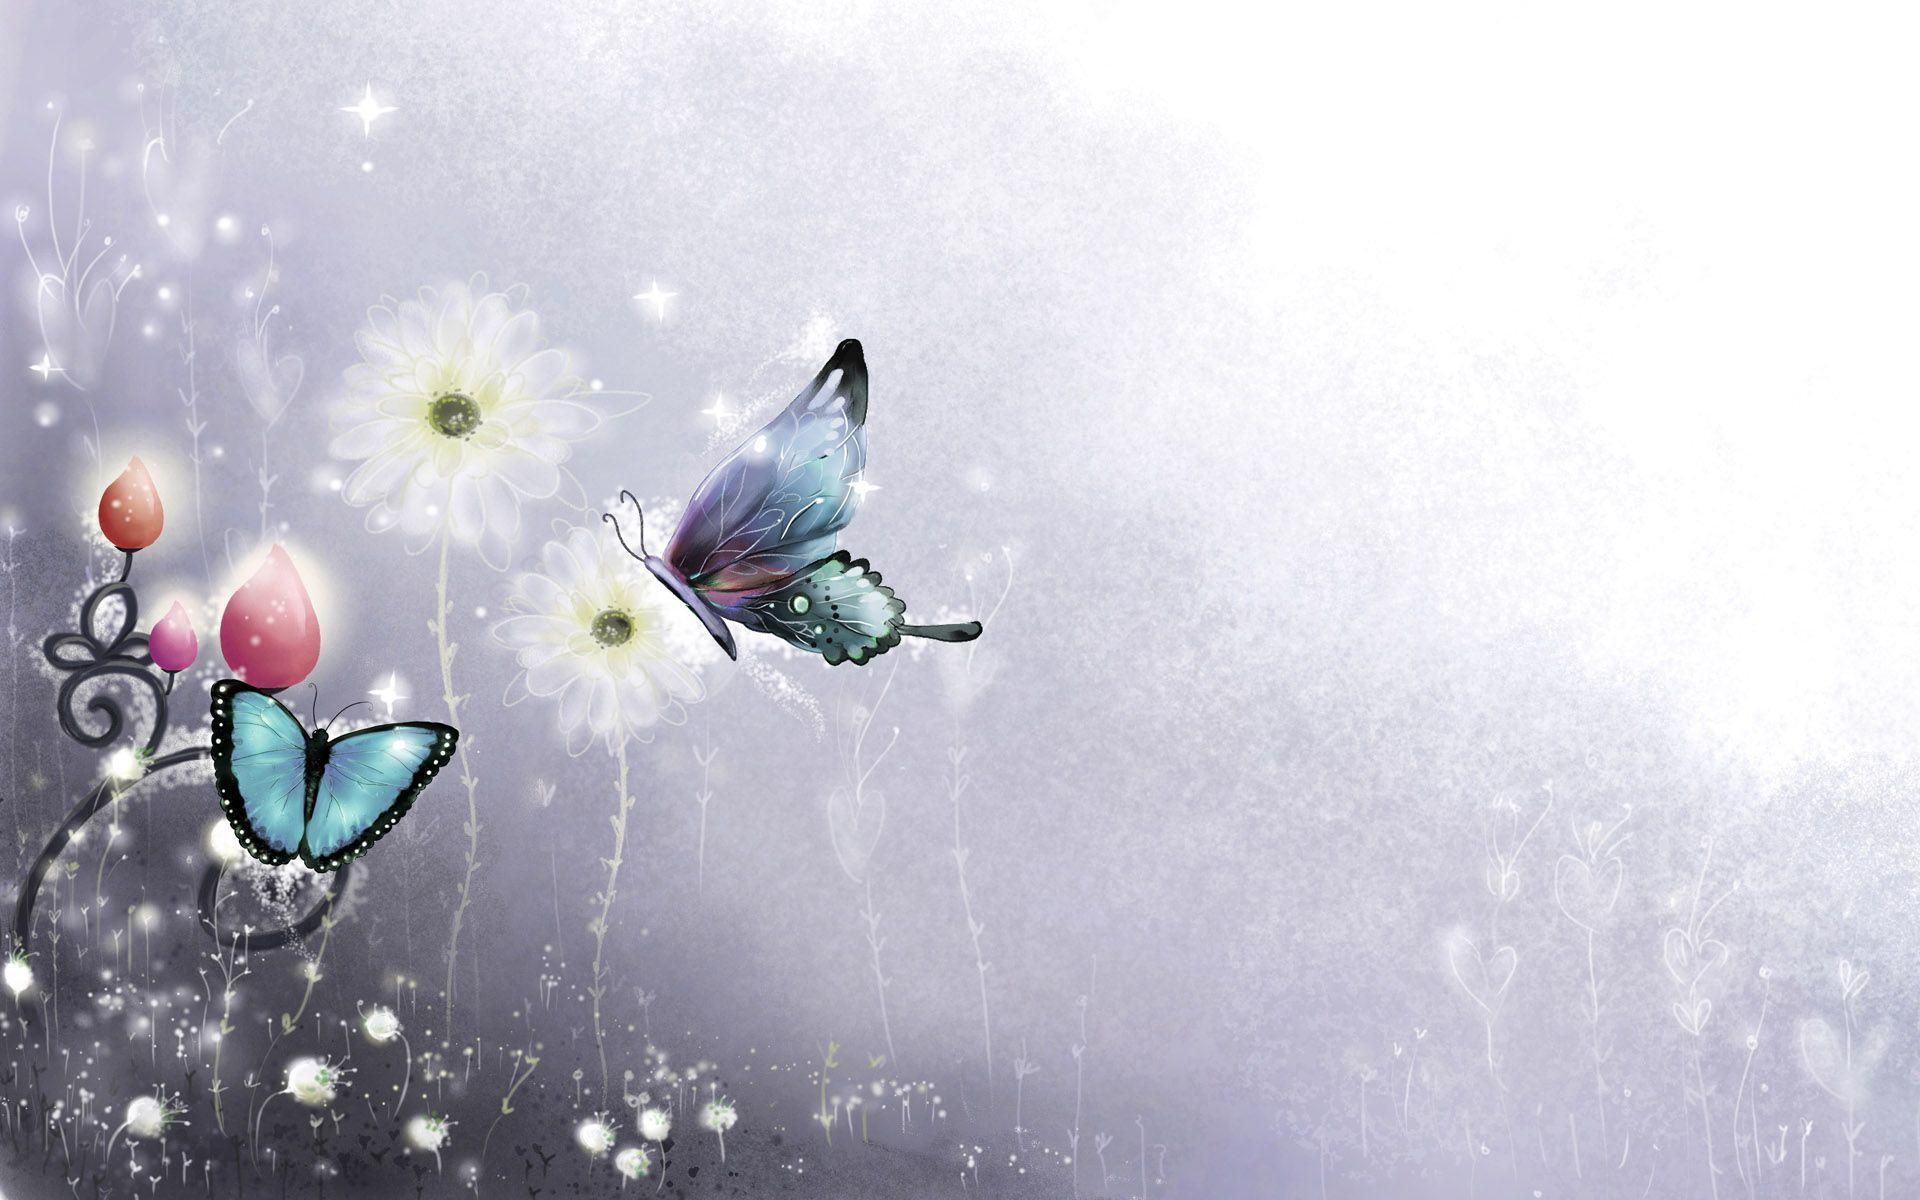 Butterflies-HD-Wallpapers-5 - AHD Images